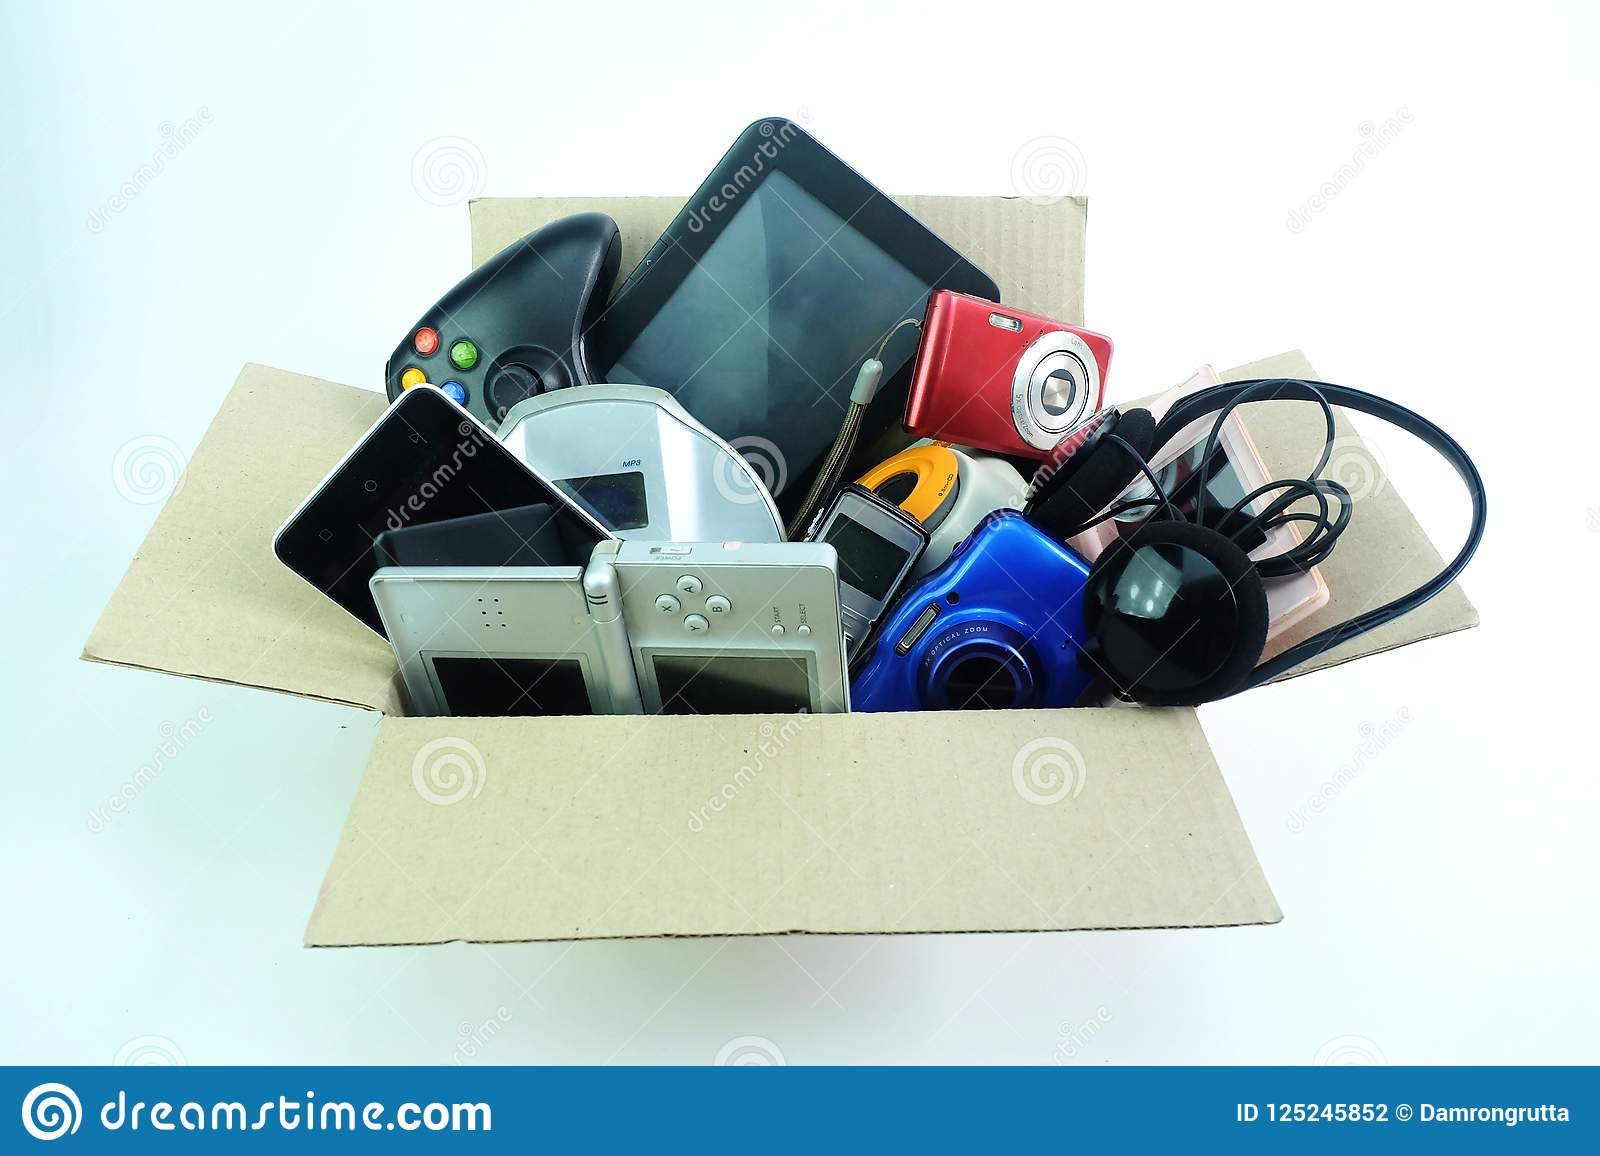 Paper box with the damaged or old used electronics gadgets for daily use on white background